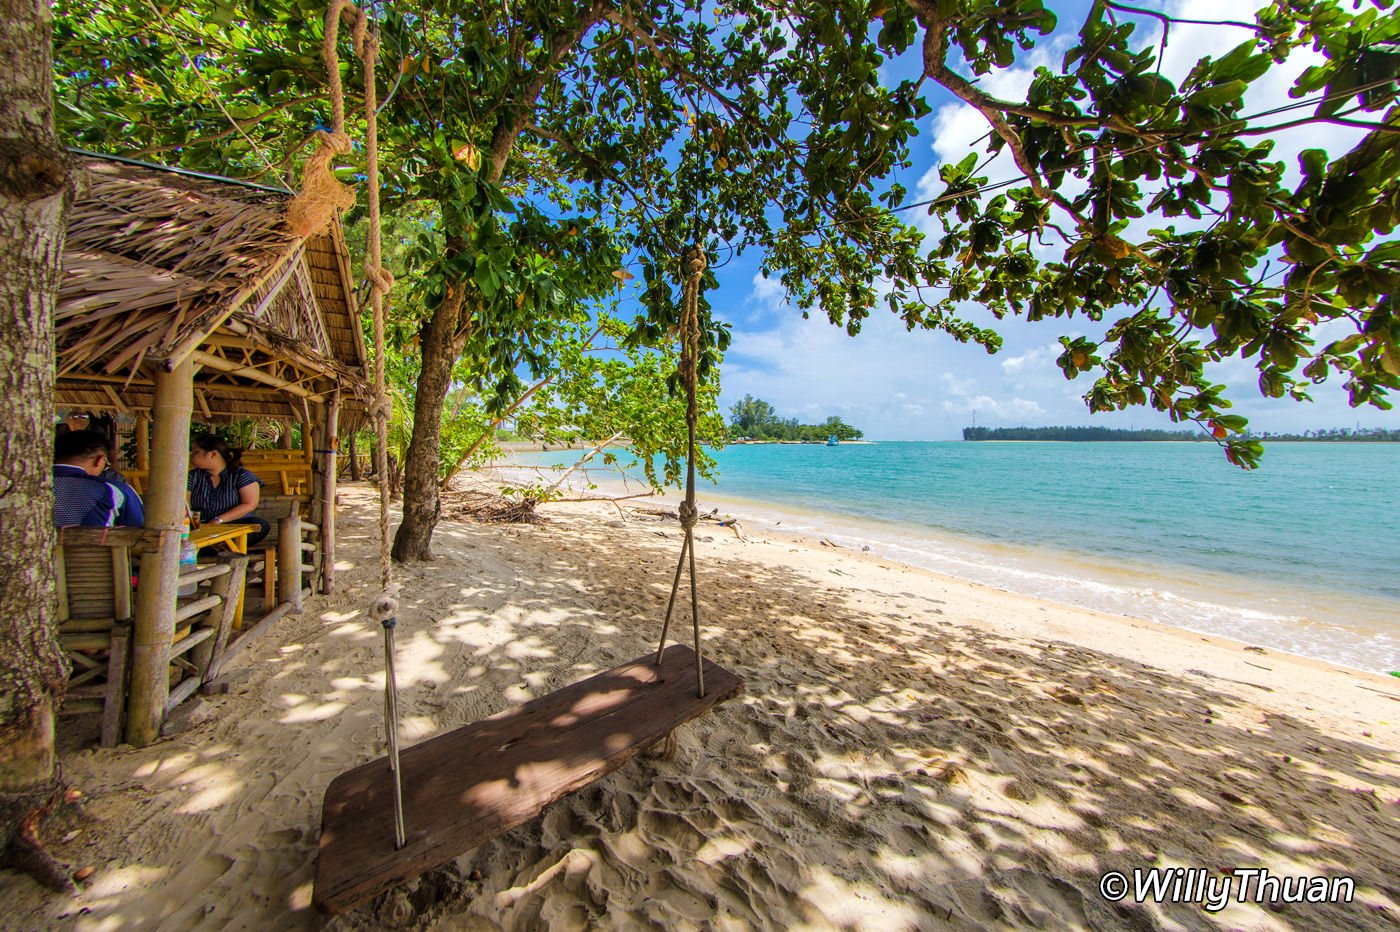 Where Can You Eat on the Beach in Phuket